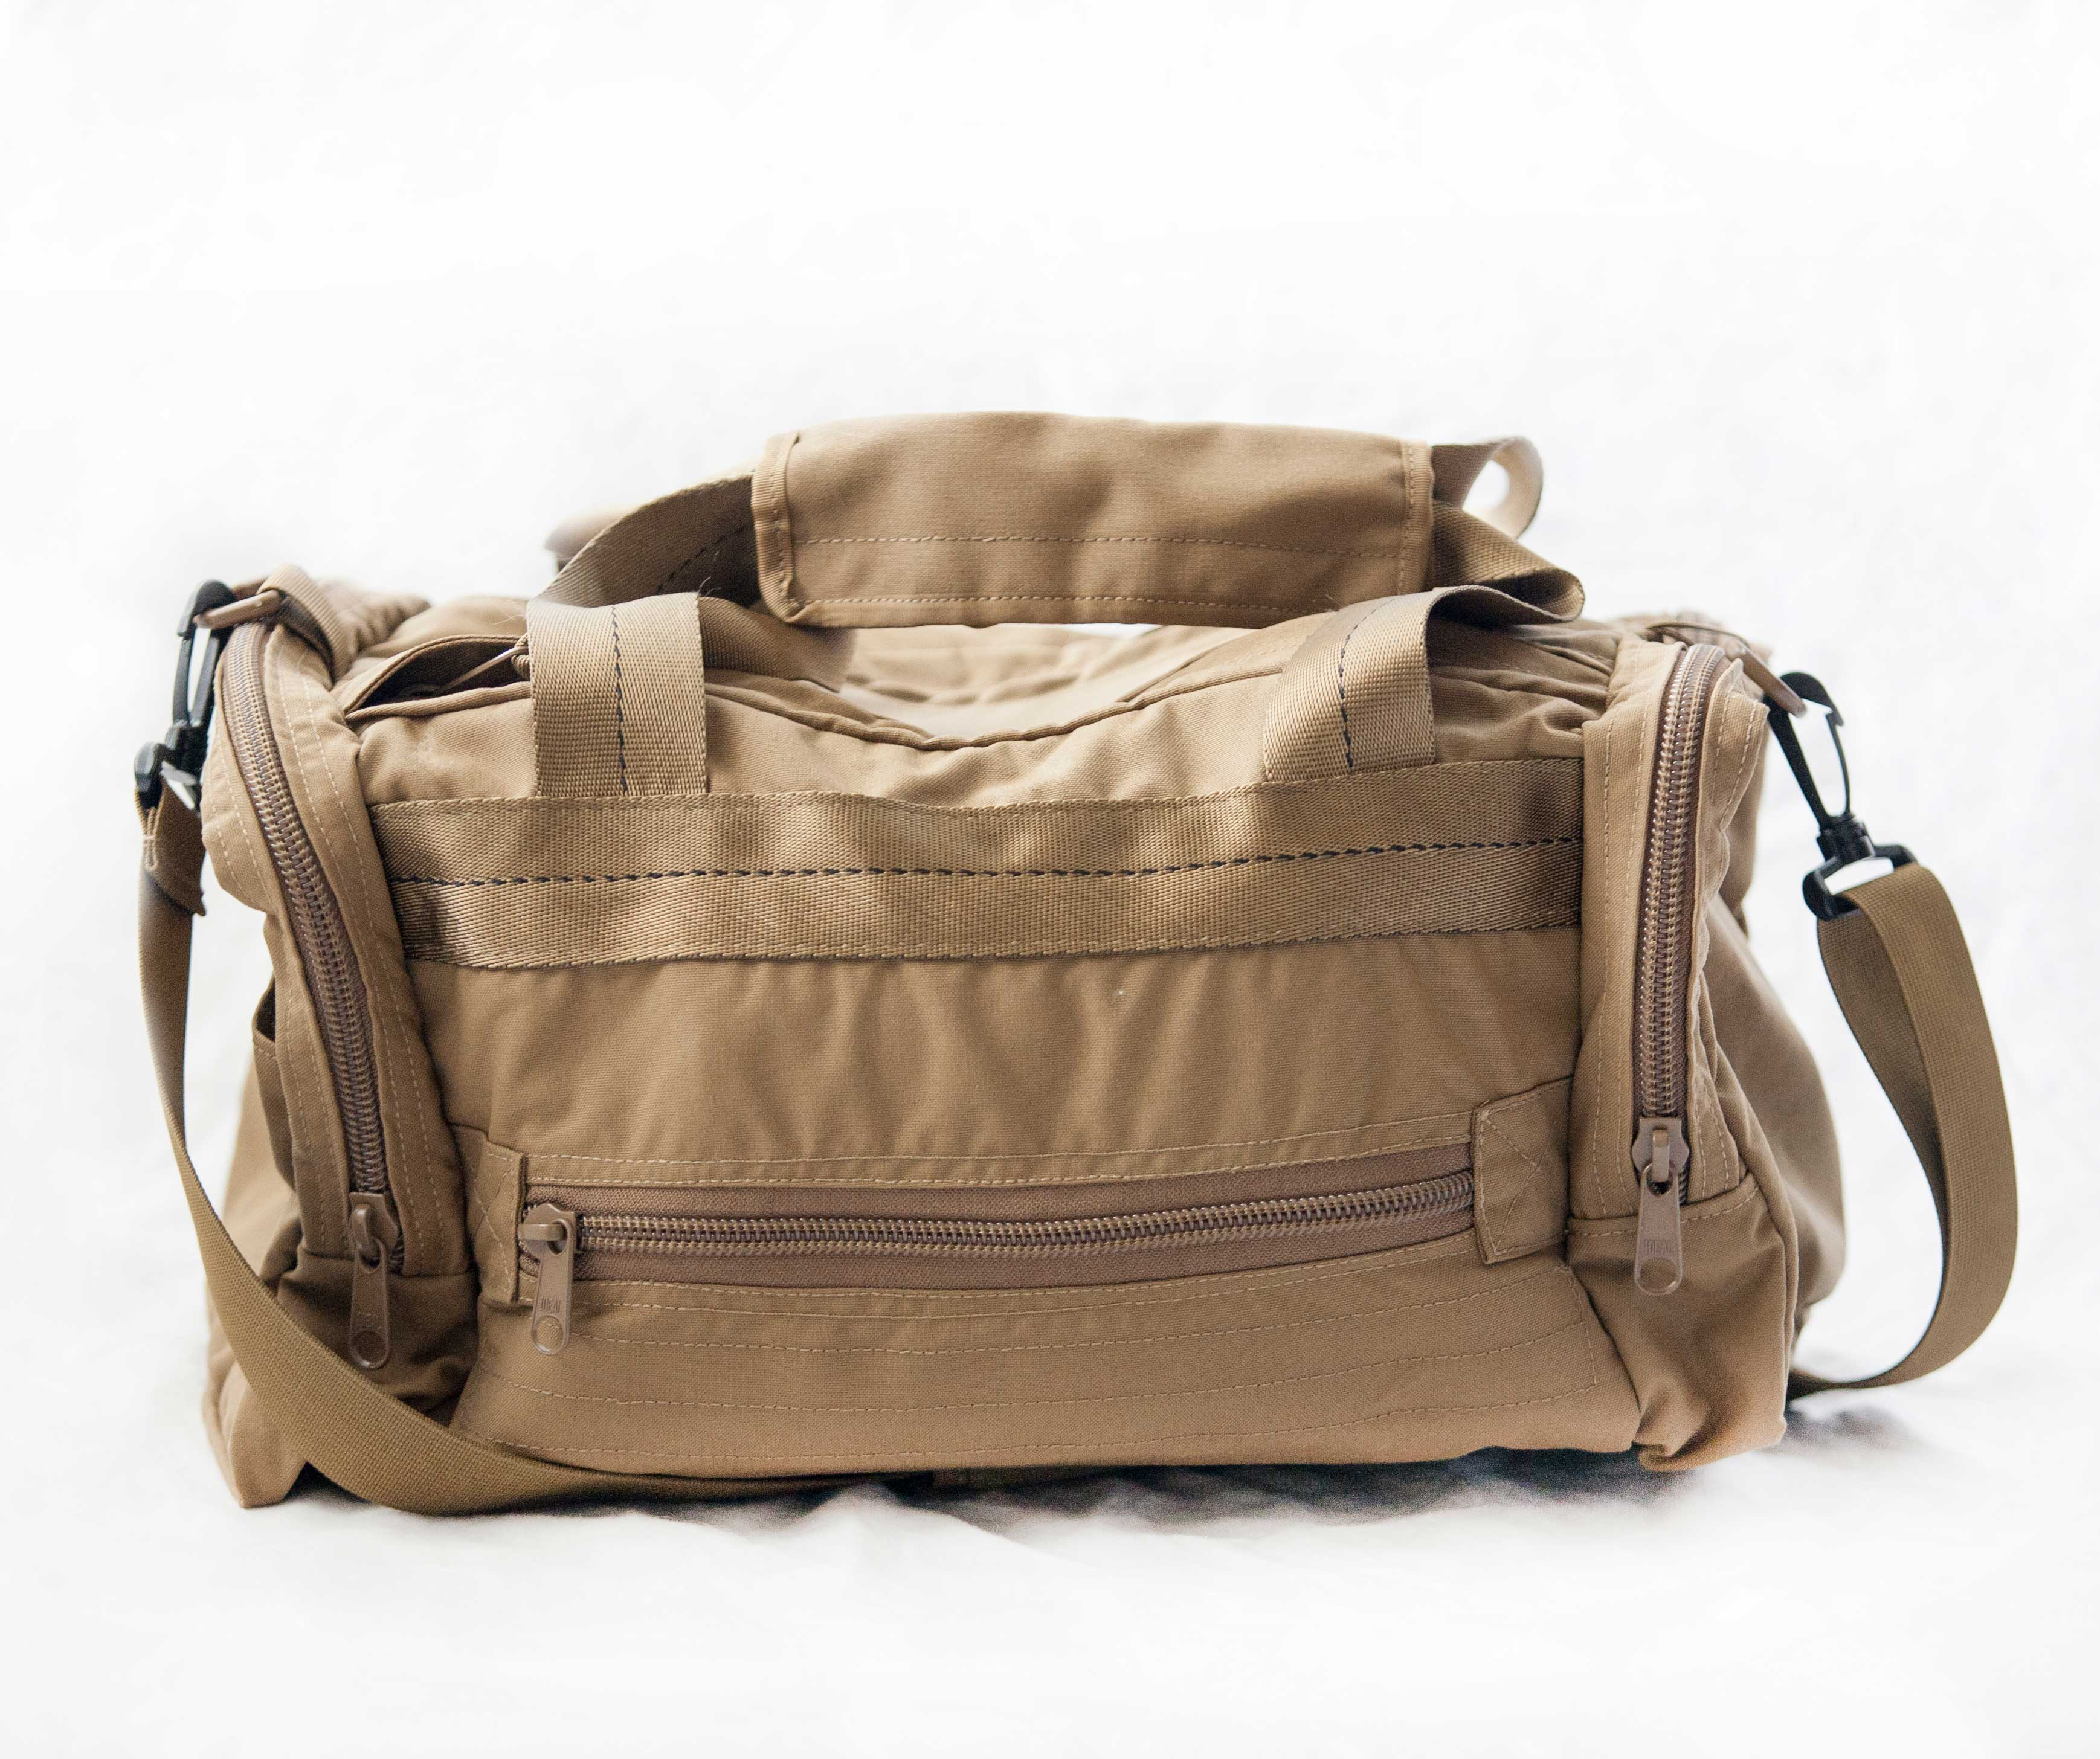 Tan US Made Gun Bag